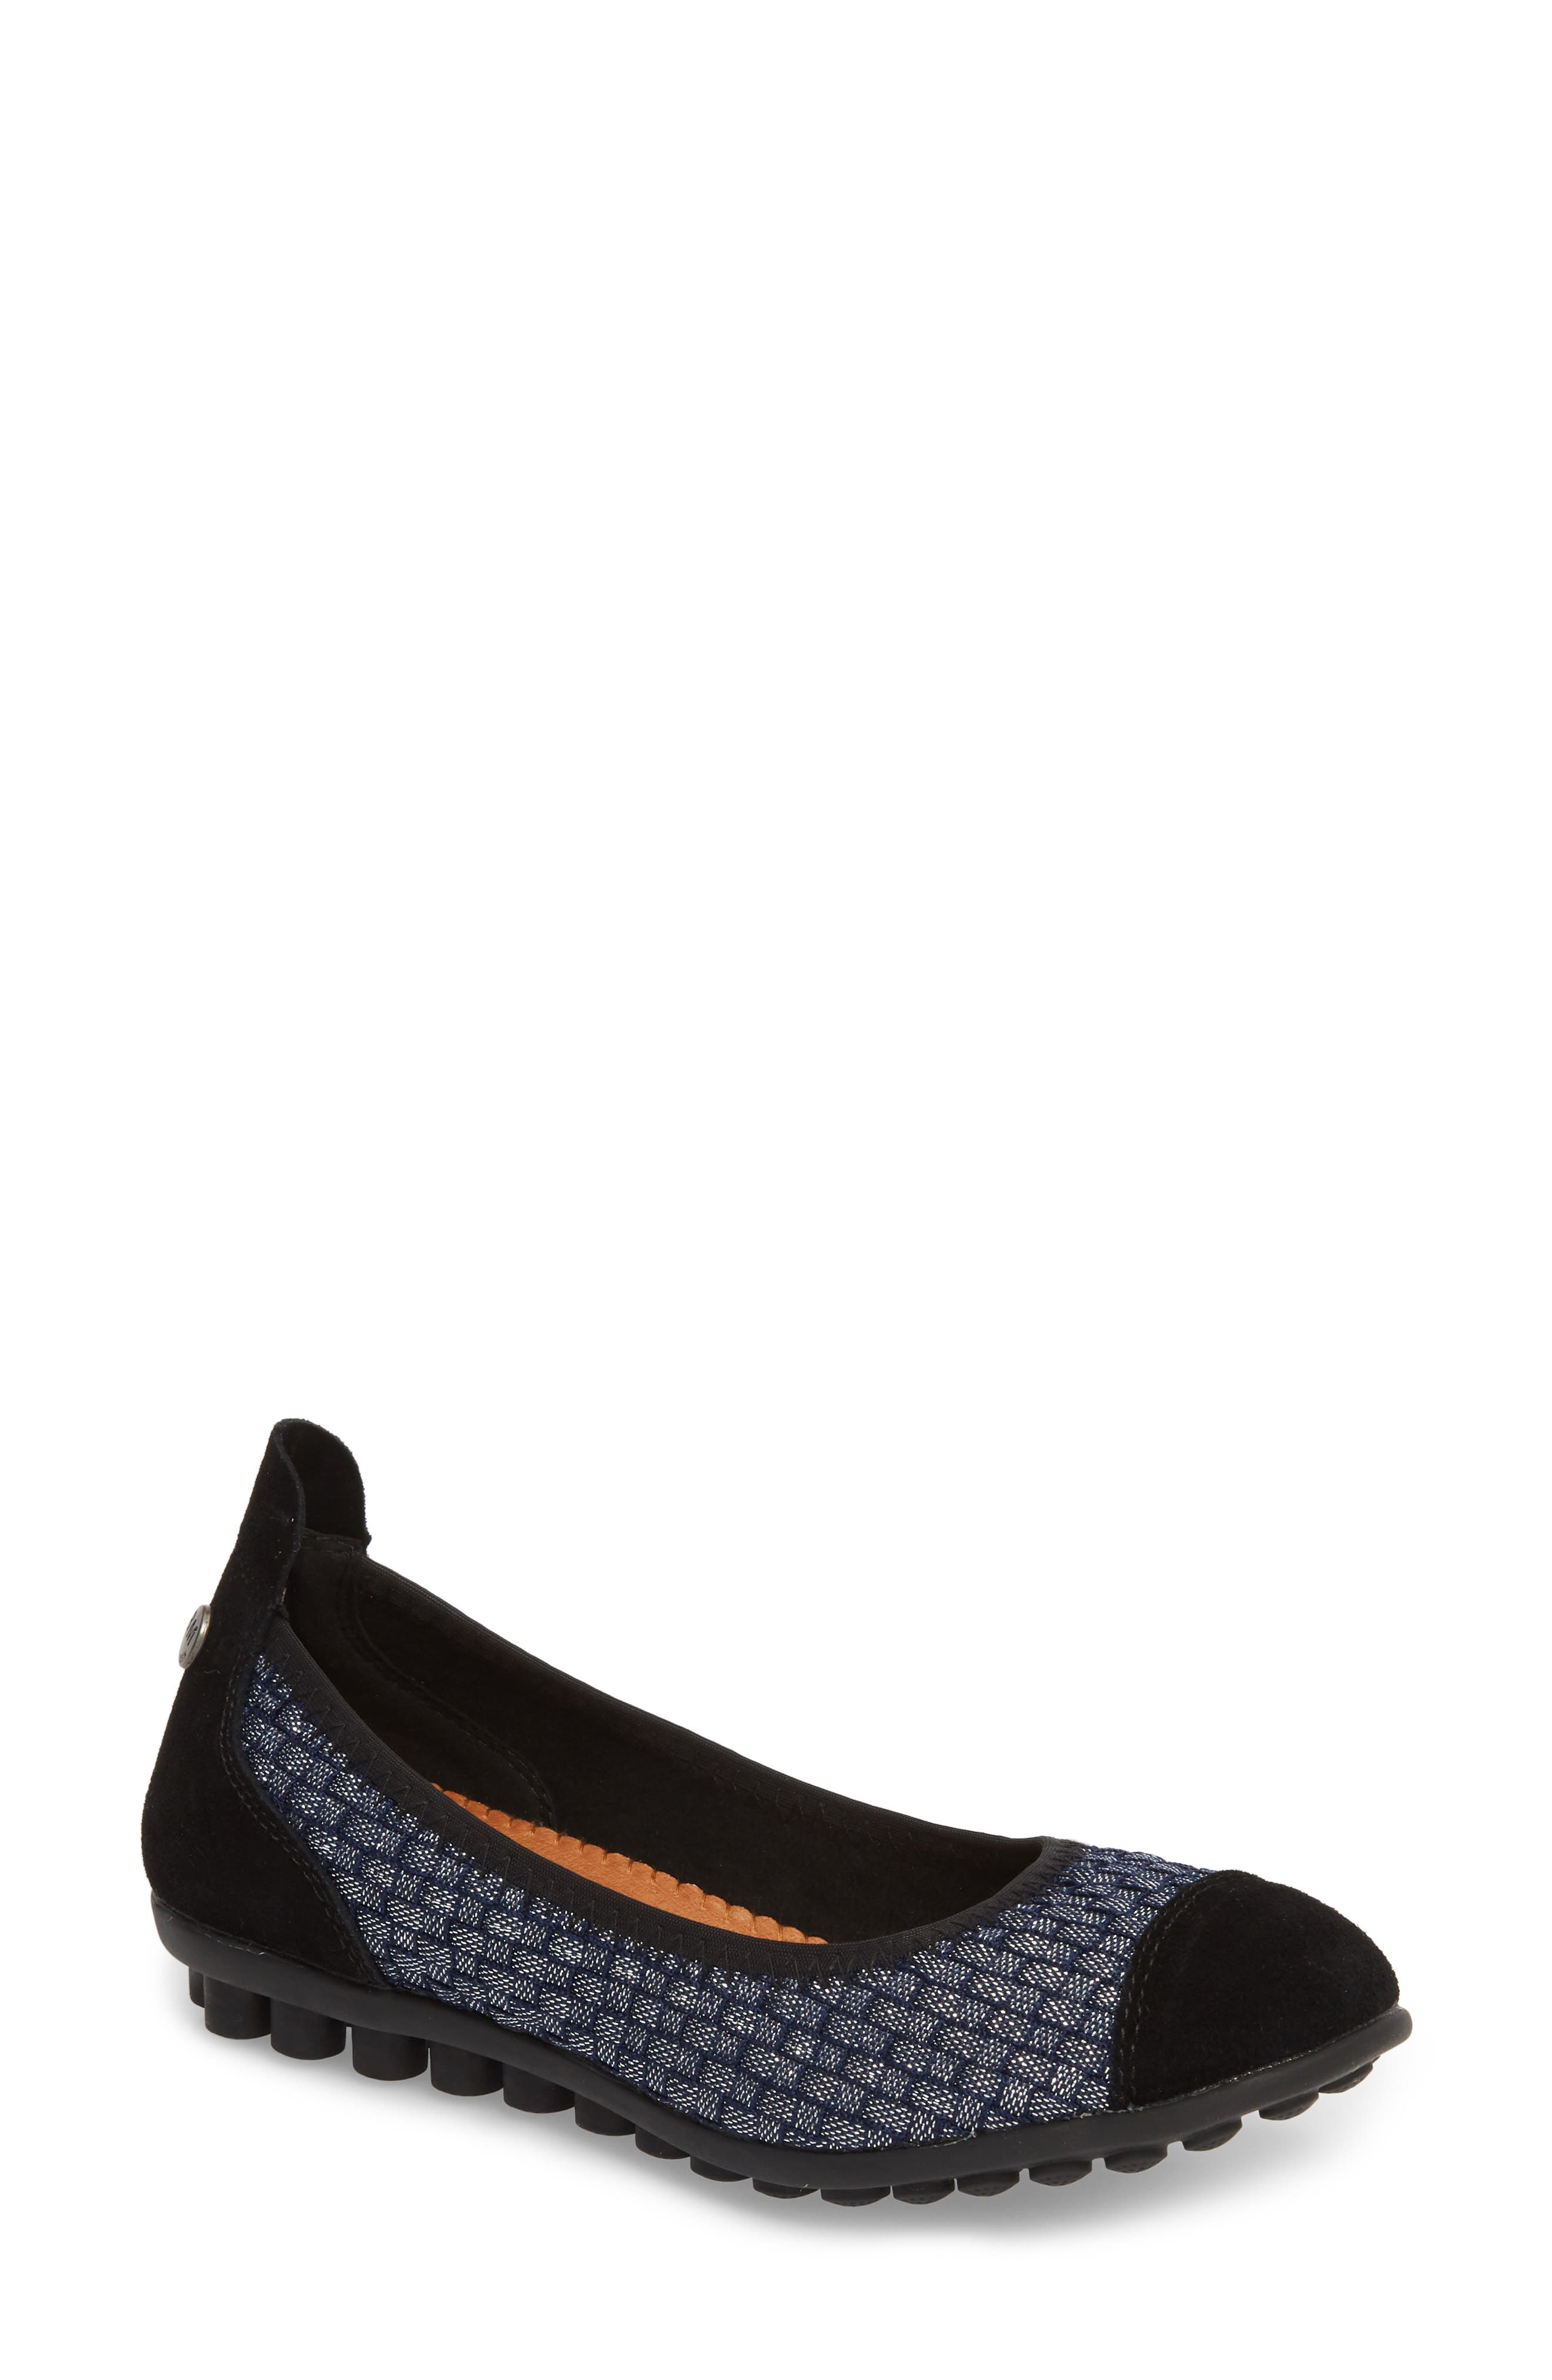 'Bella Me' Woven Flat,                             Main thumbnail 1, color,                             NAVY SHIMMER FABRIC